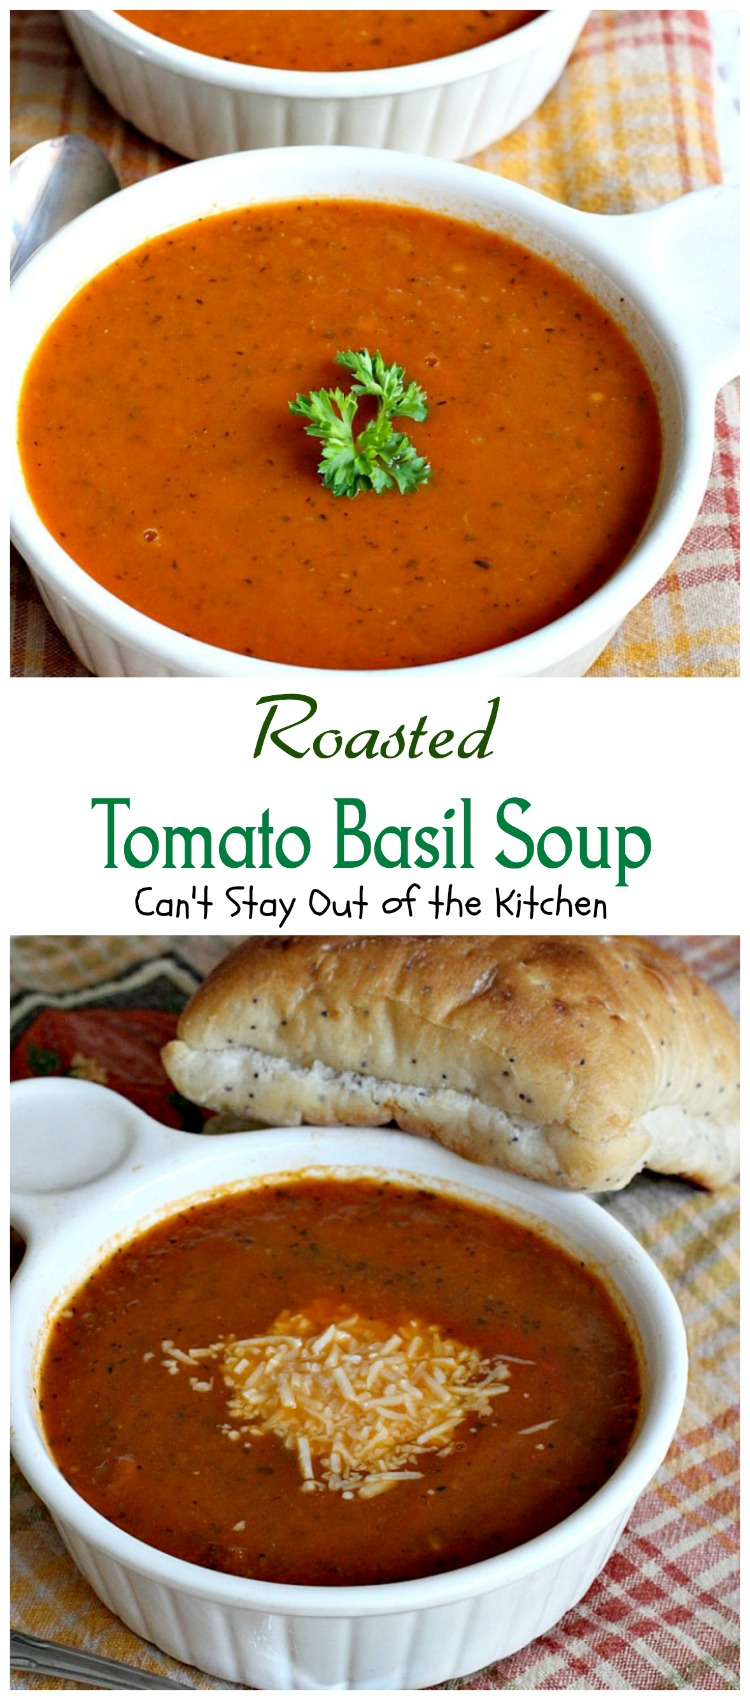 roasted tomato basil soup - can't stay out of the kitchen